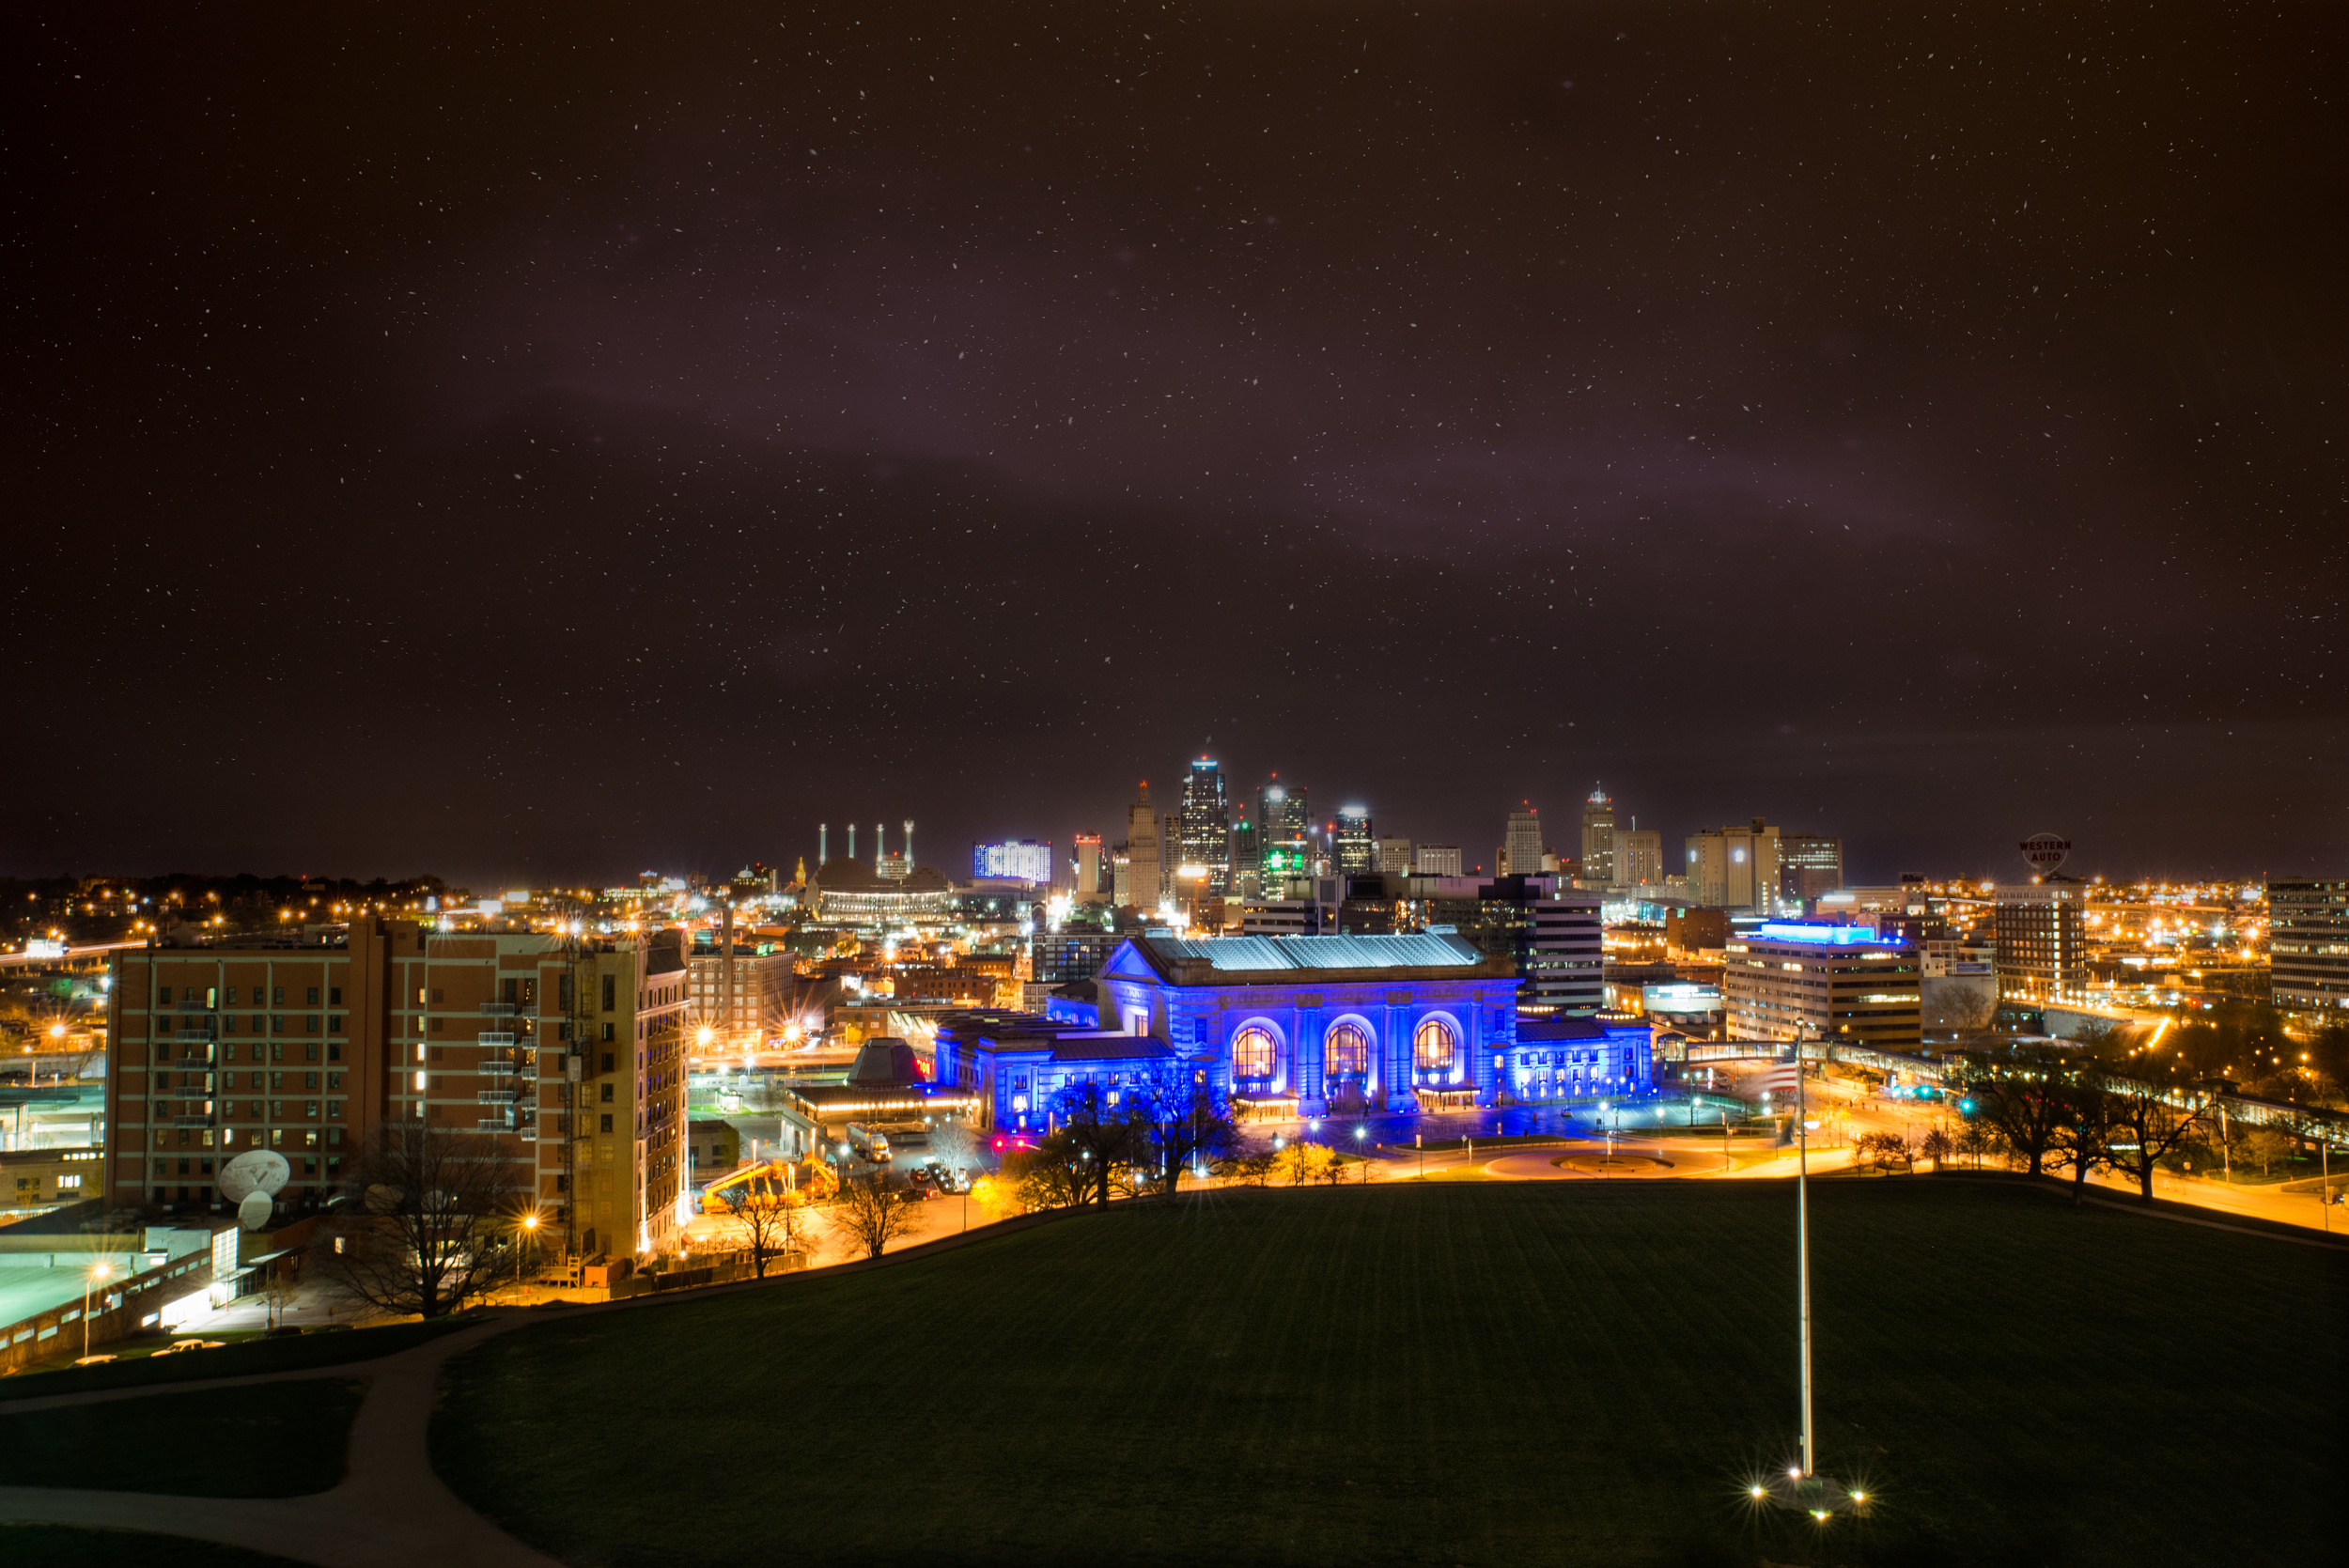 I gotup SUPER early to be able to take this shot I've been wanting to take for a while now. The blue building you see is Union Station in KCMOand I took it standing at the Liberty Memorial.